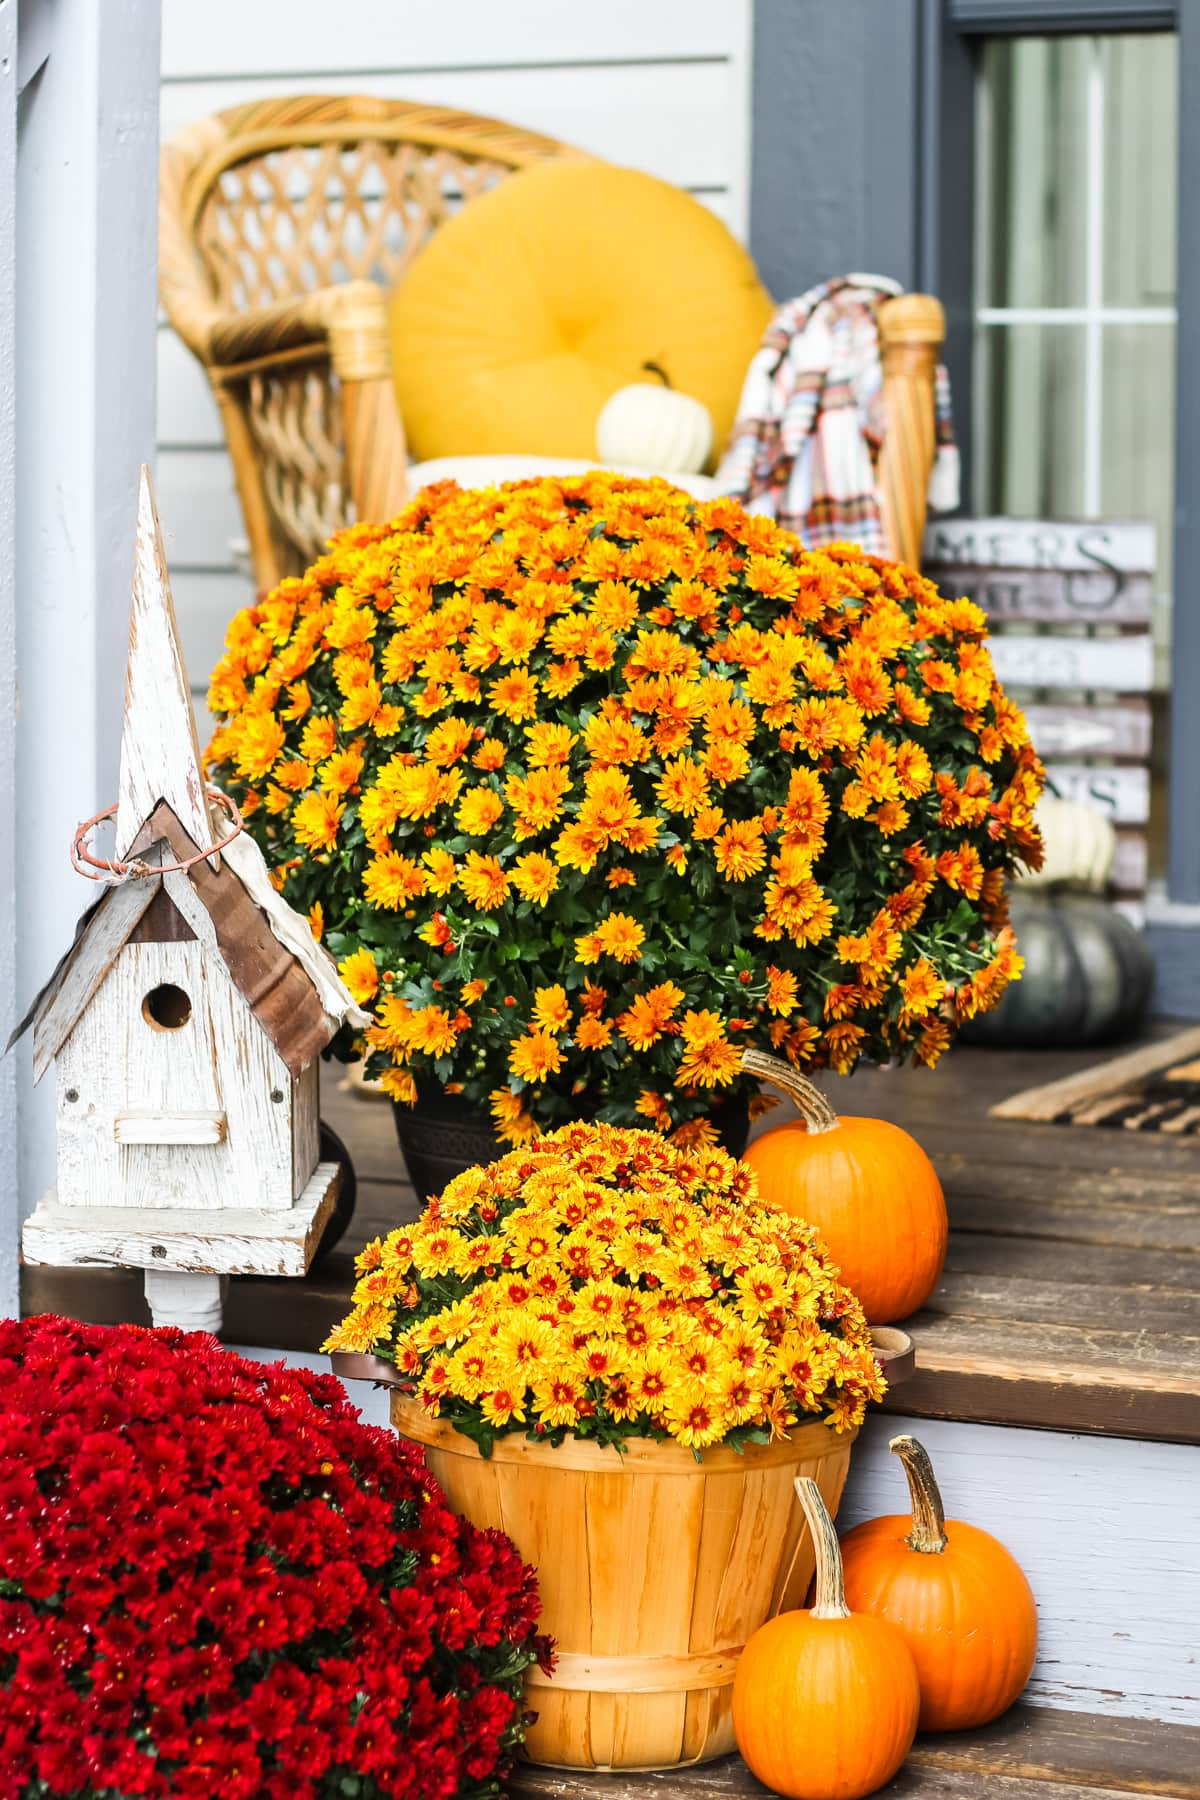 a set of brown wooden stairs decorated with orange and red chrysanthemums, mini pumpkins and a white birdhouse. in the background is a wicker chair with a yellow pillow and plaid blanket